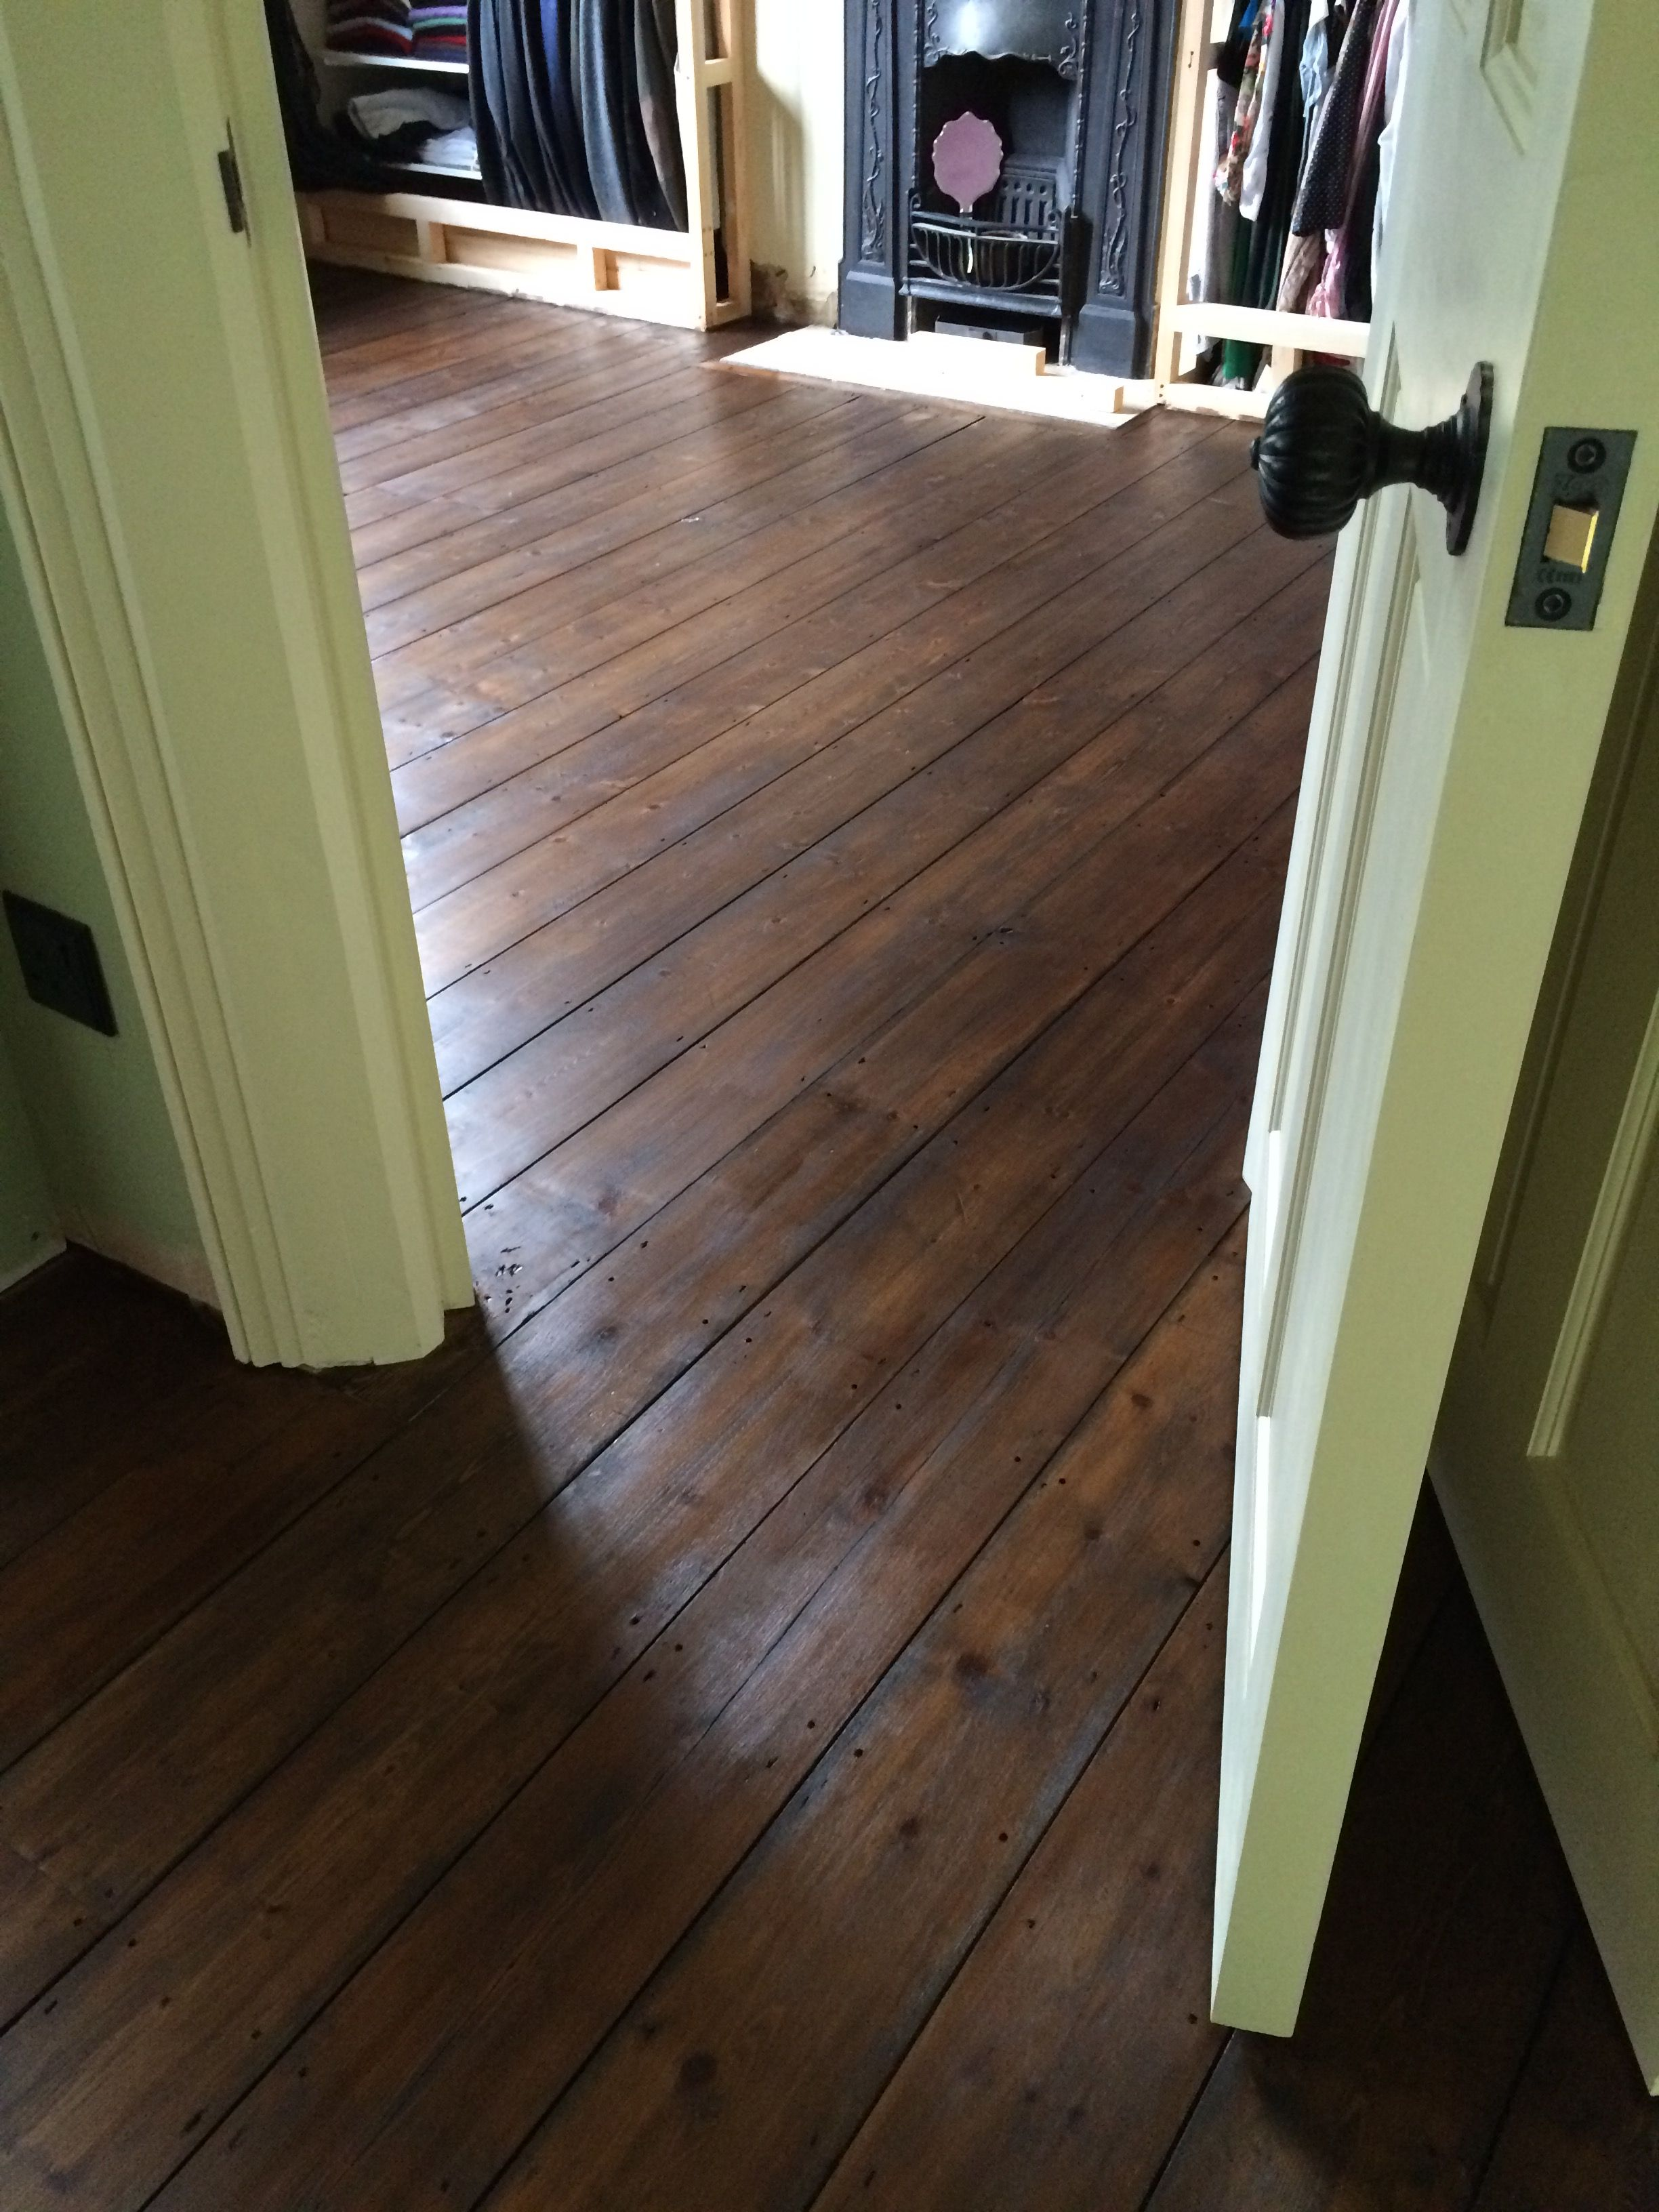 Floorboards Sanded And Stained Final Coat Of Hard Wax Oil To Do Flooring Hardwood Floors House Flooring